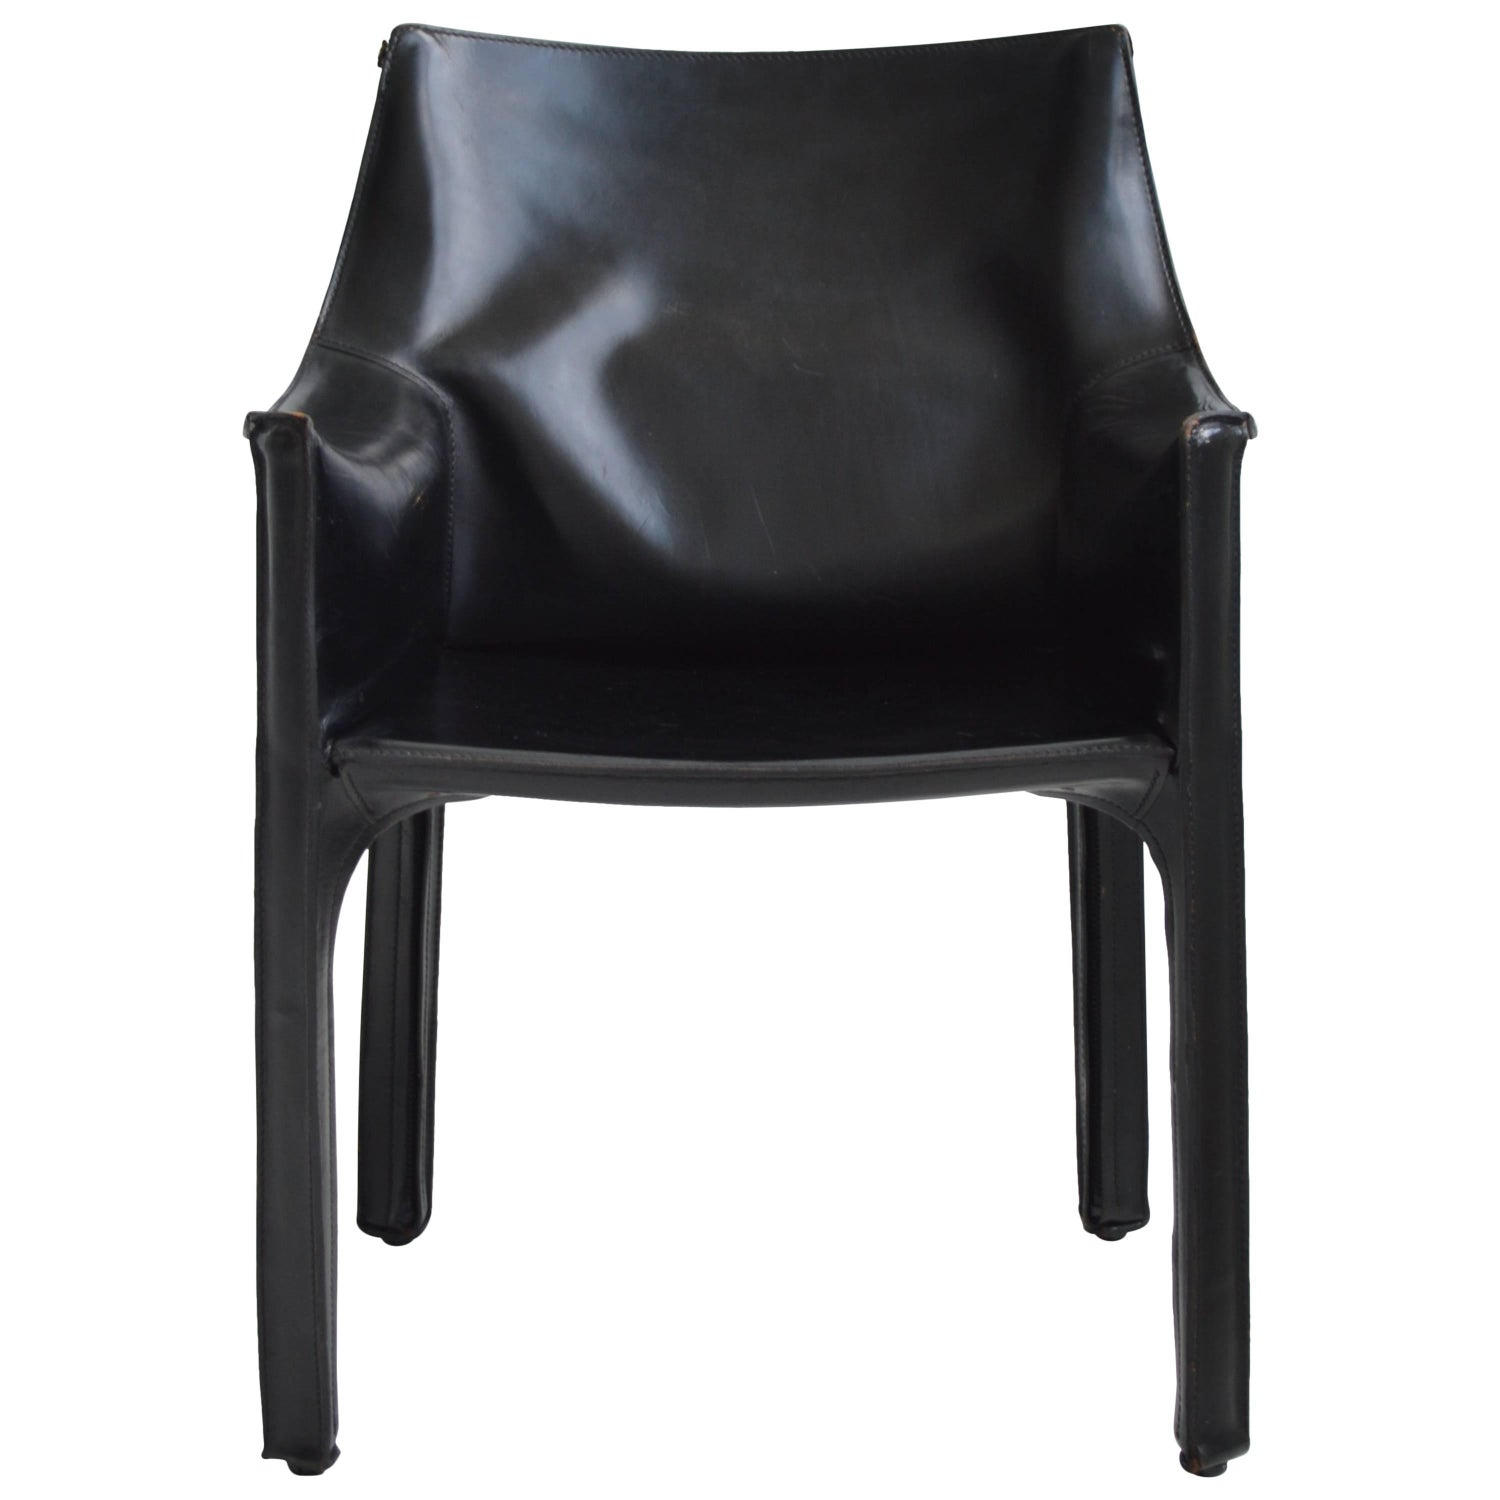 Mario Bellini Cab Chair for Cassina 20th Century Italian For